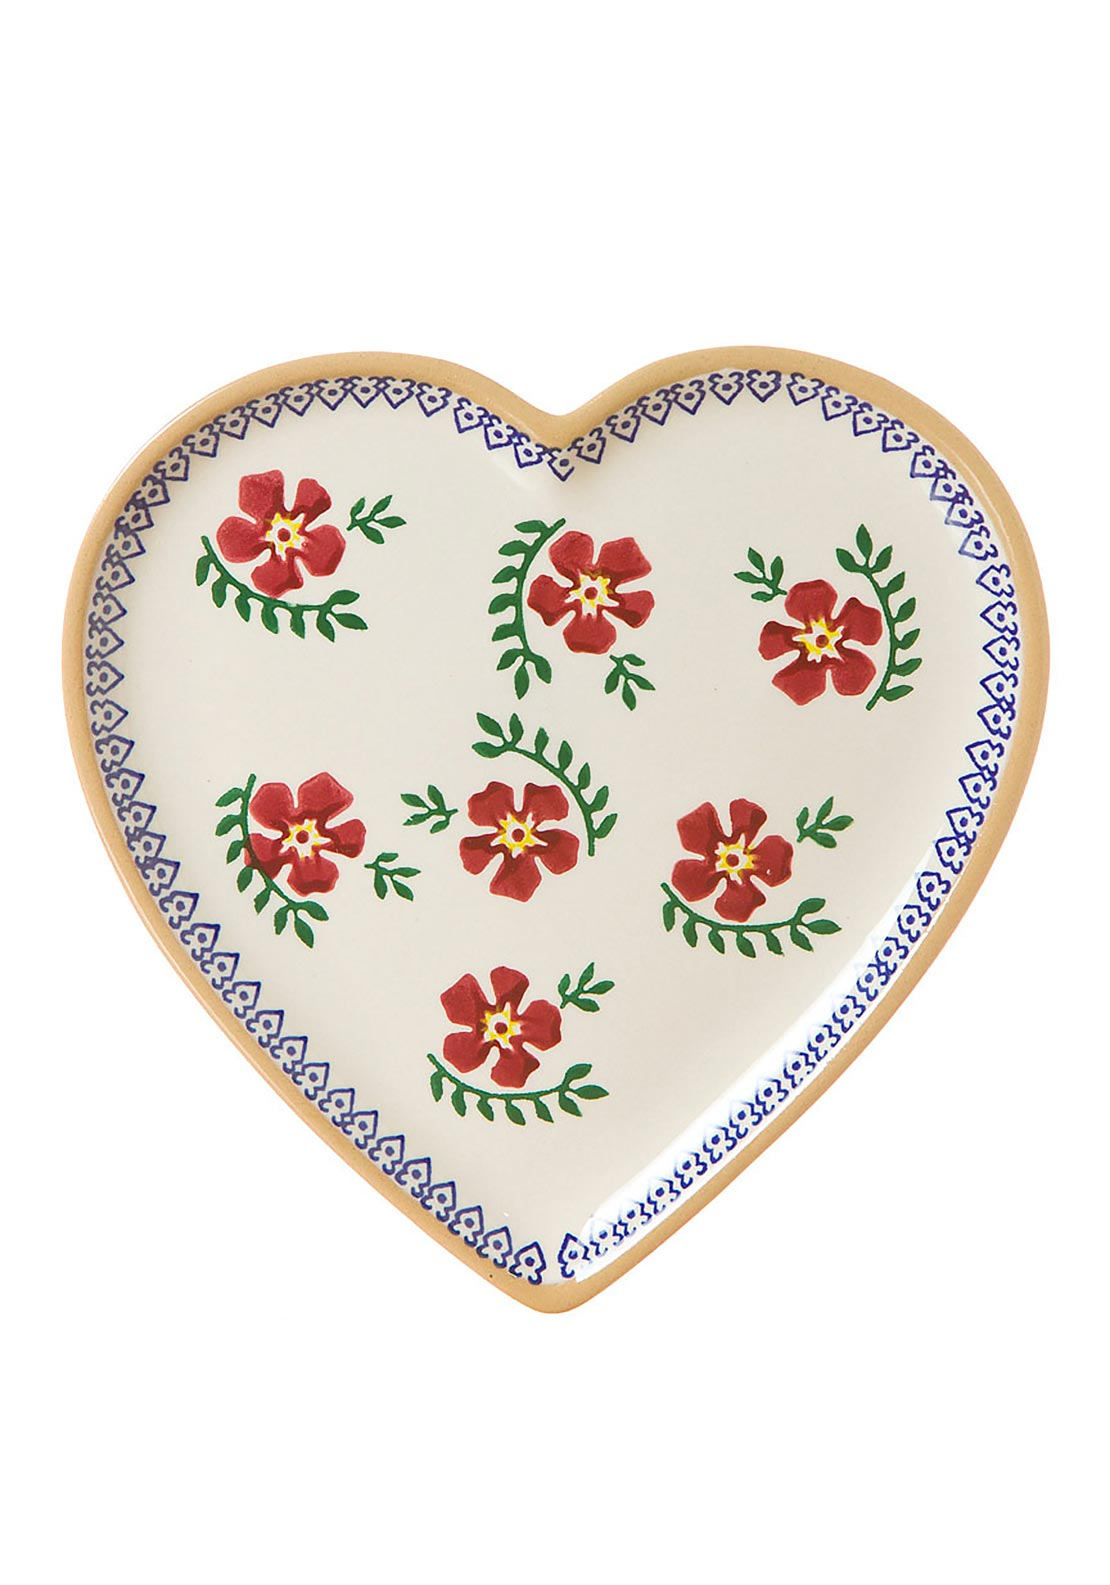 Nicholas Mosse Pottery Old Rose Heart Plate, Medium